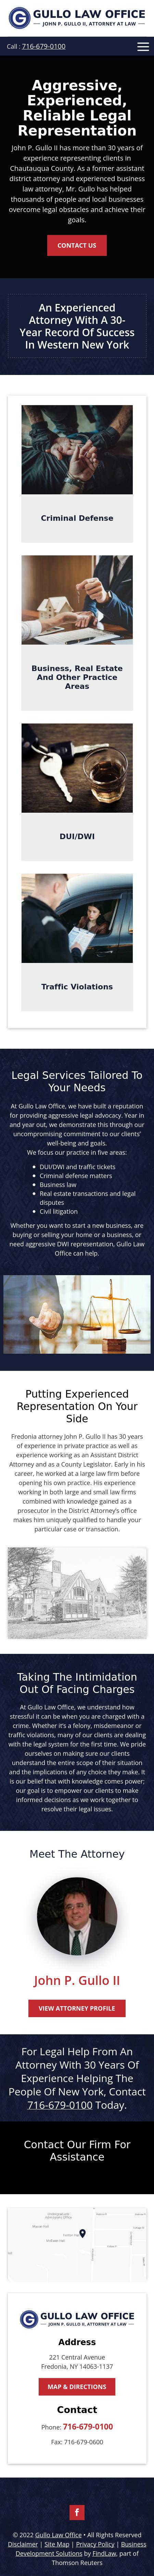 Gullo Law Office - Fredonia NY Lawyers